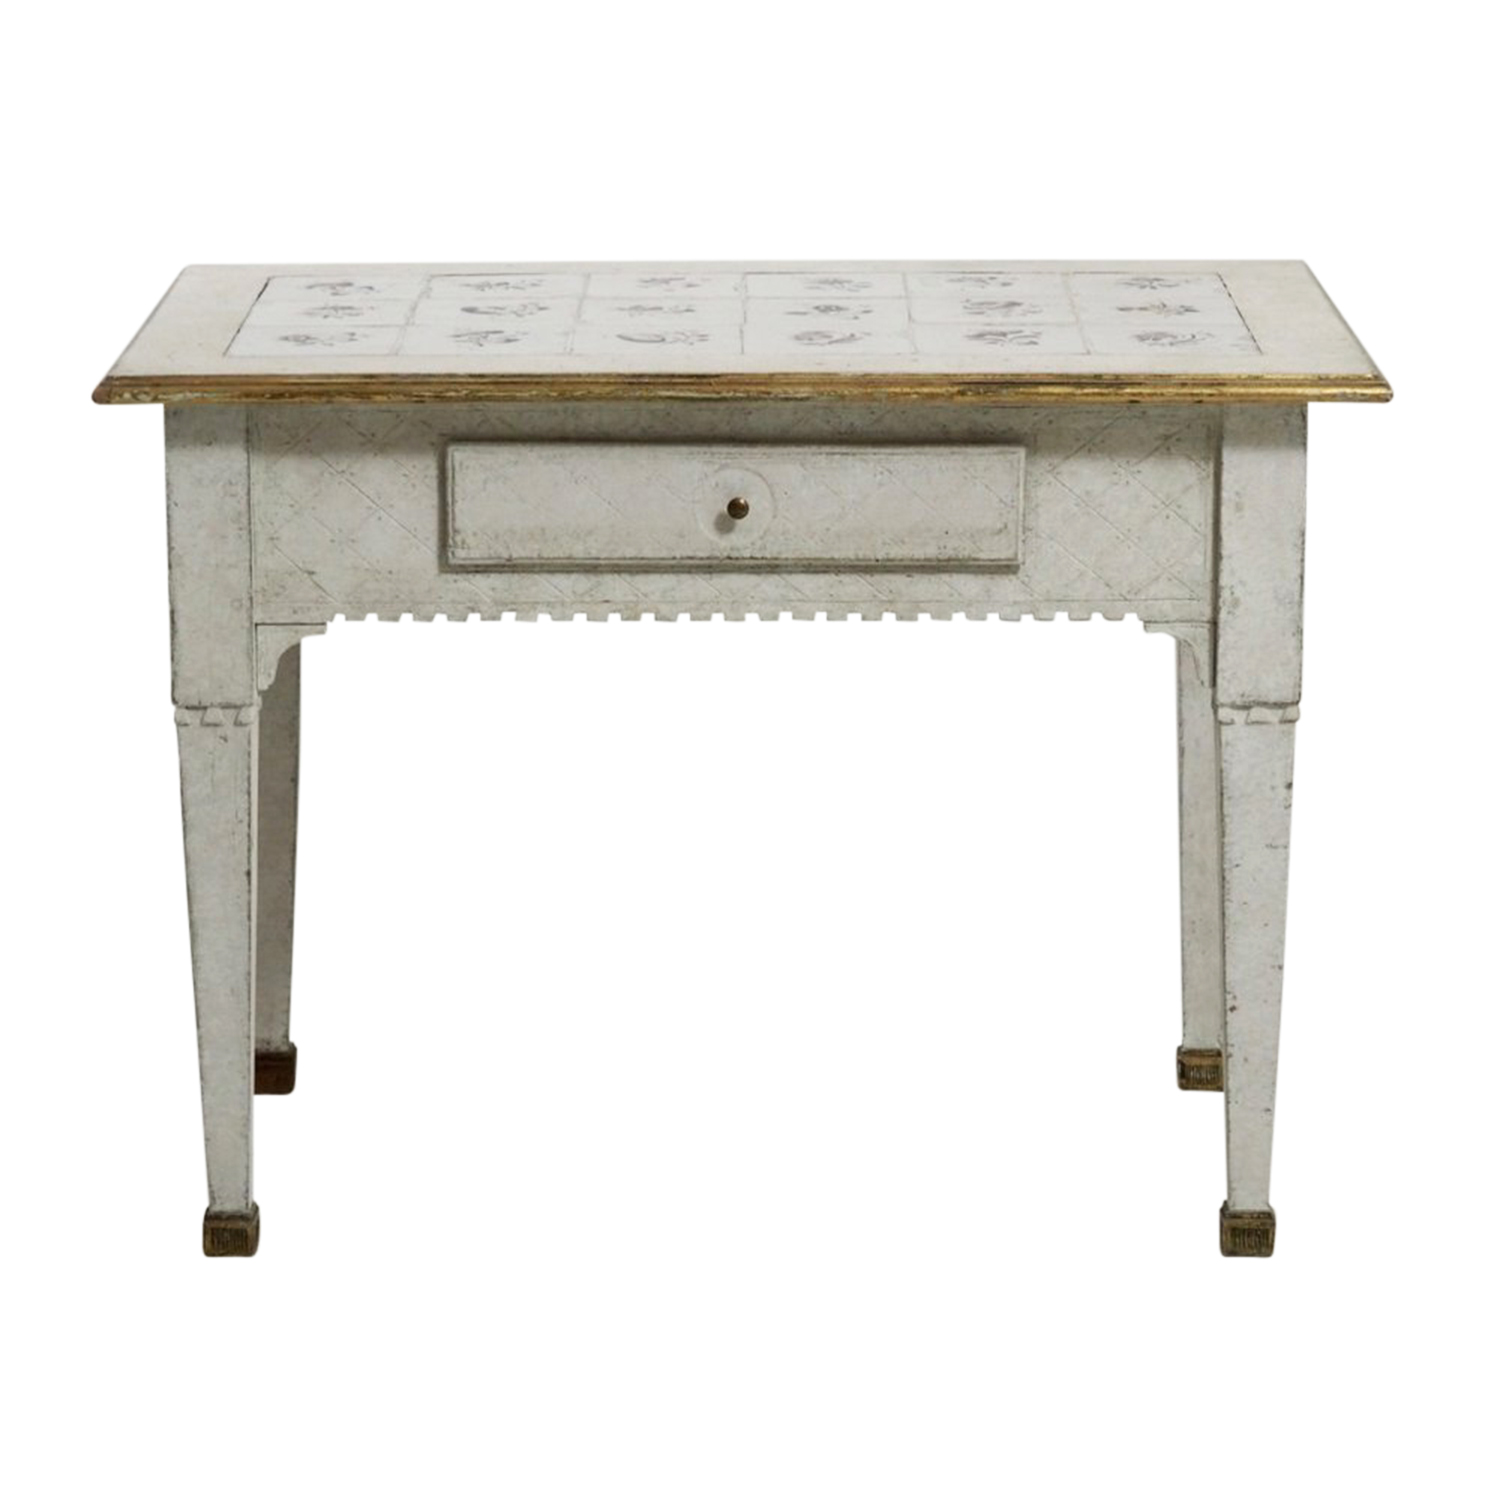 18th – 19th Light-White Swedish Gustavian Tile Top Table – Small Pinewood Table